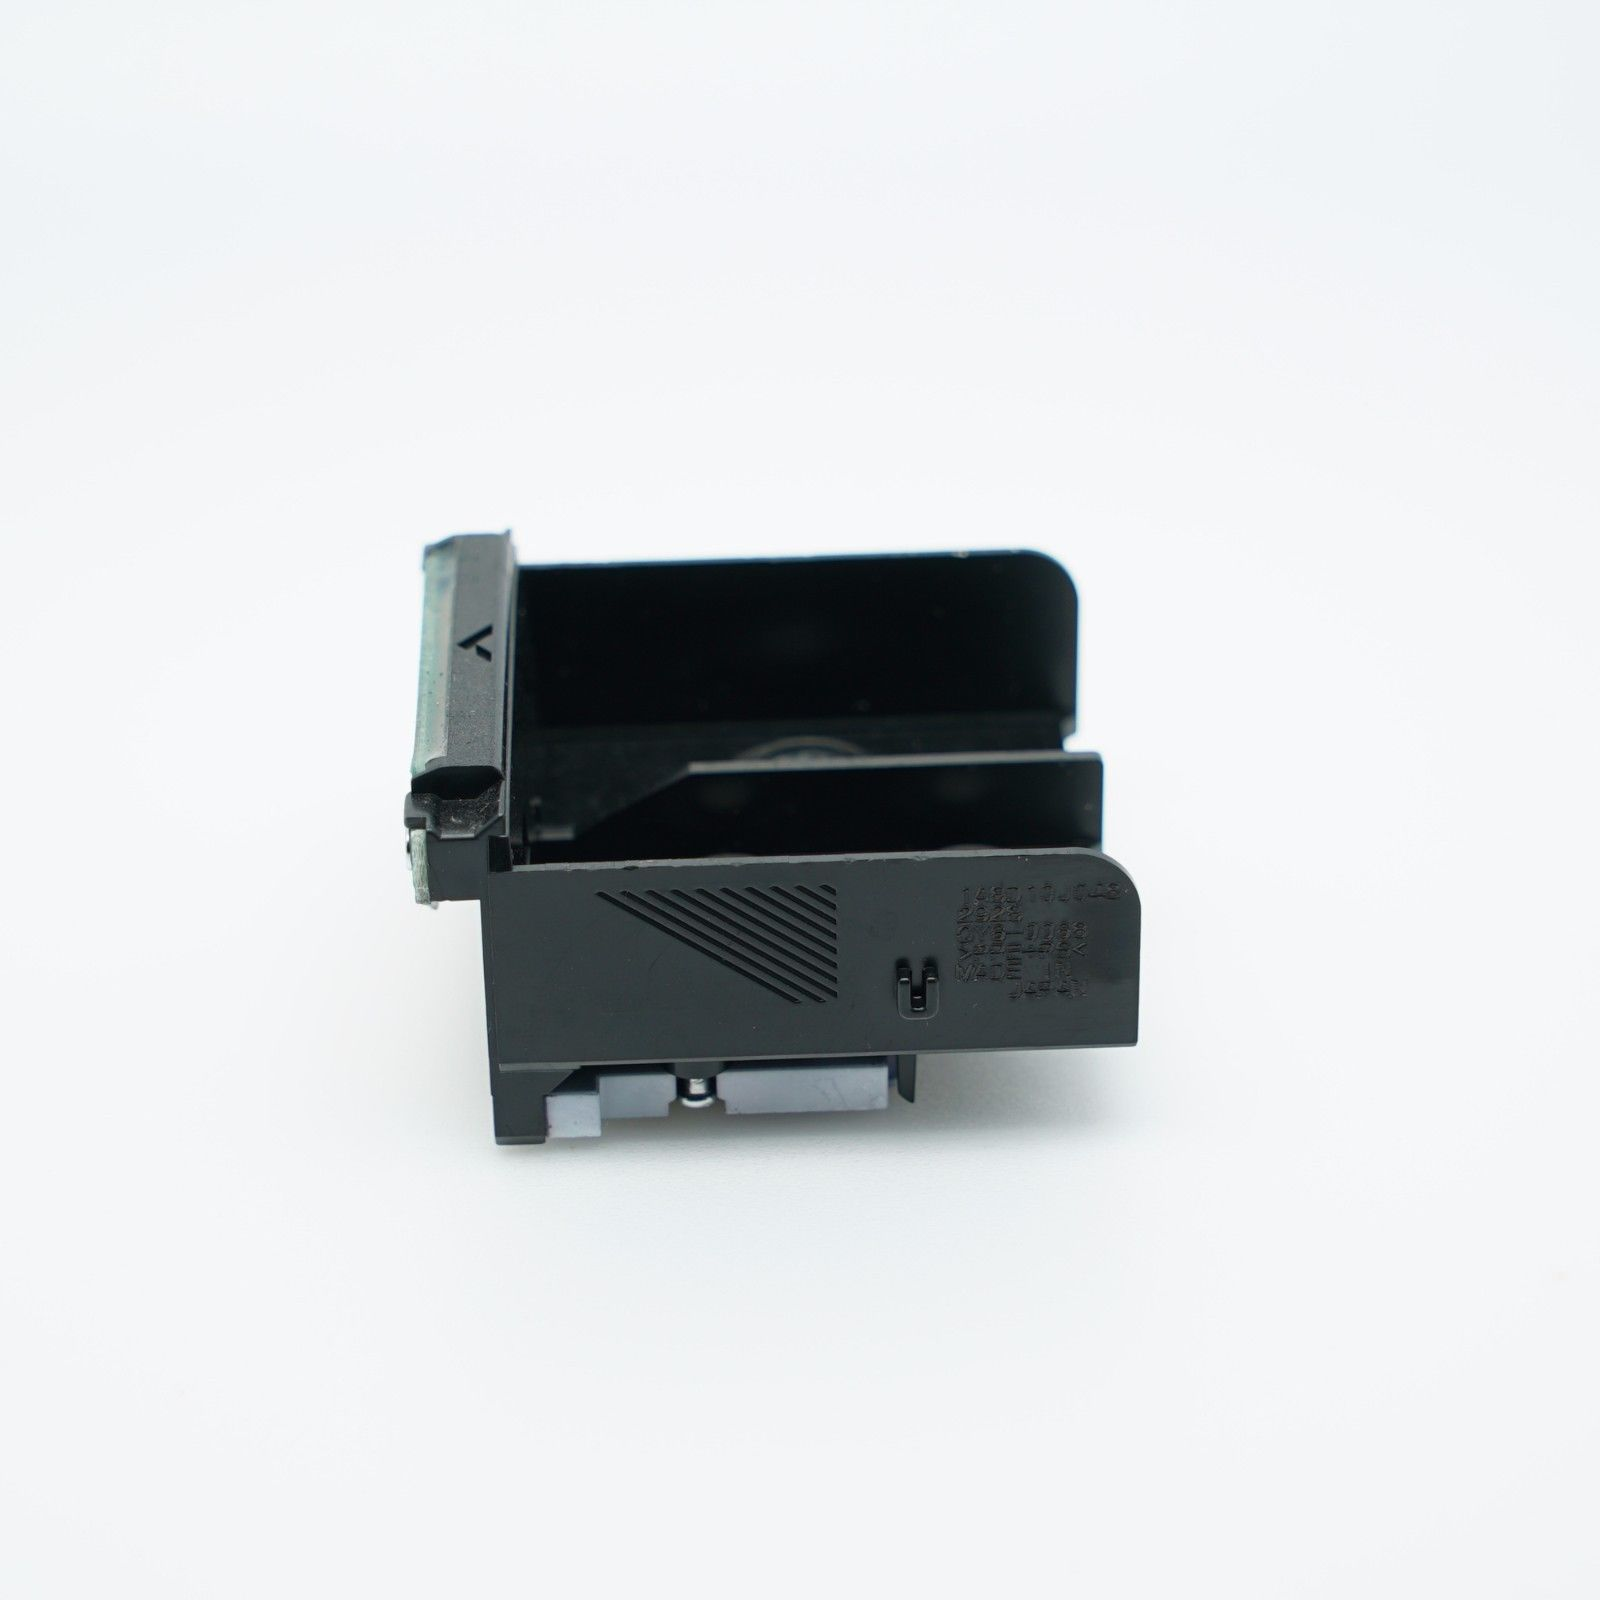 QY6-0068 QY6-0068-000 Printhead Print Head FOR CANON PIXMA iP100 iP110 genuine brand new qy6 0083 printhead print head for canon mg6310 mg6320 mg6350 mg6380 mg7120 mg7140 mg7150 mg7180 ip8720 ip8750